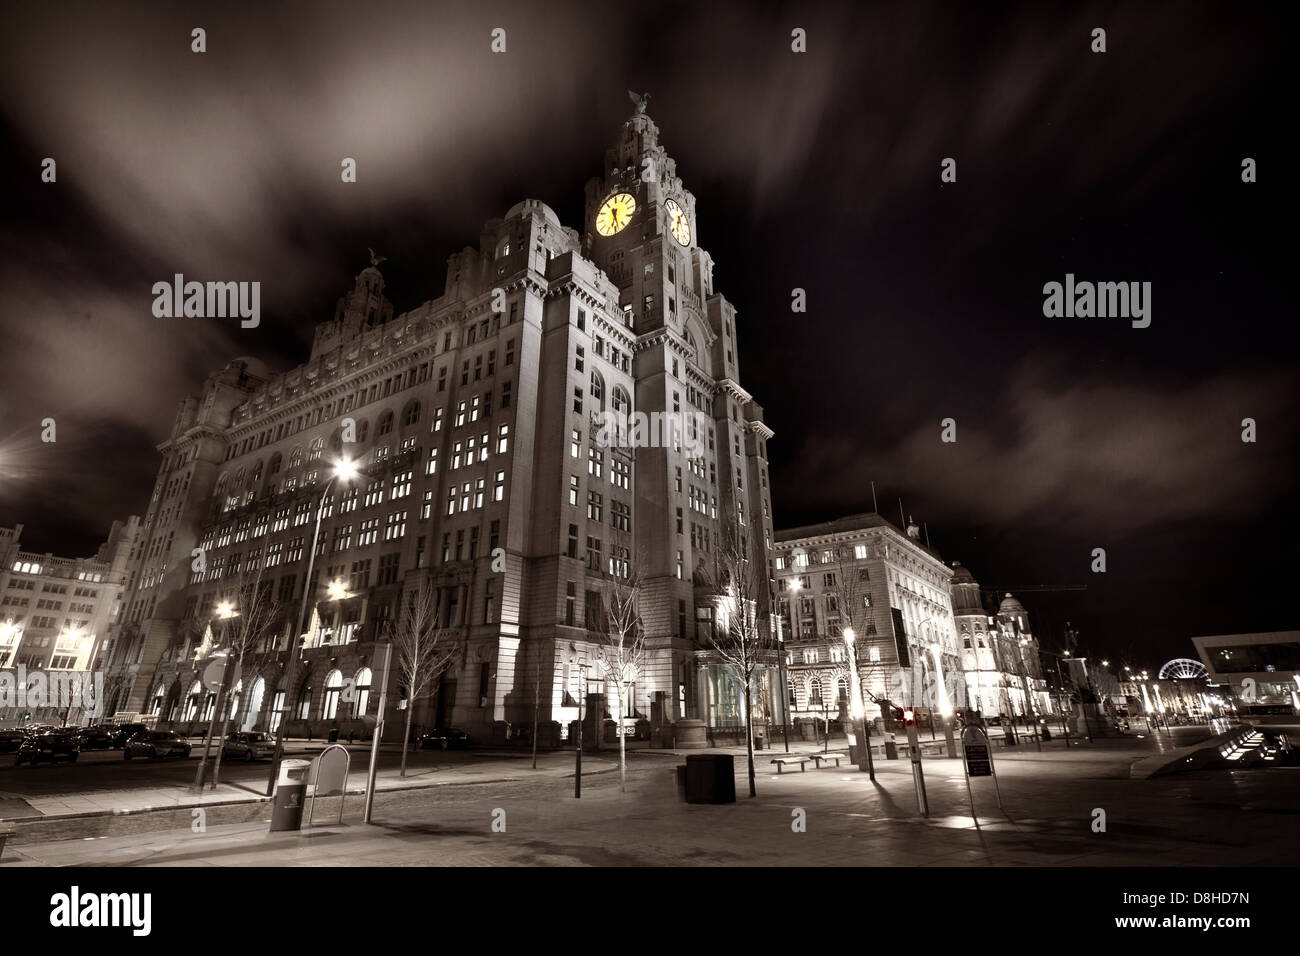 Dusk image of the Royal Liver Building on the Liverpool dock front at the Pier Head - Stock Image